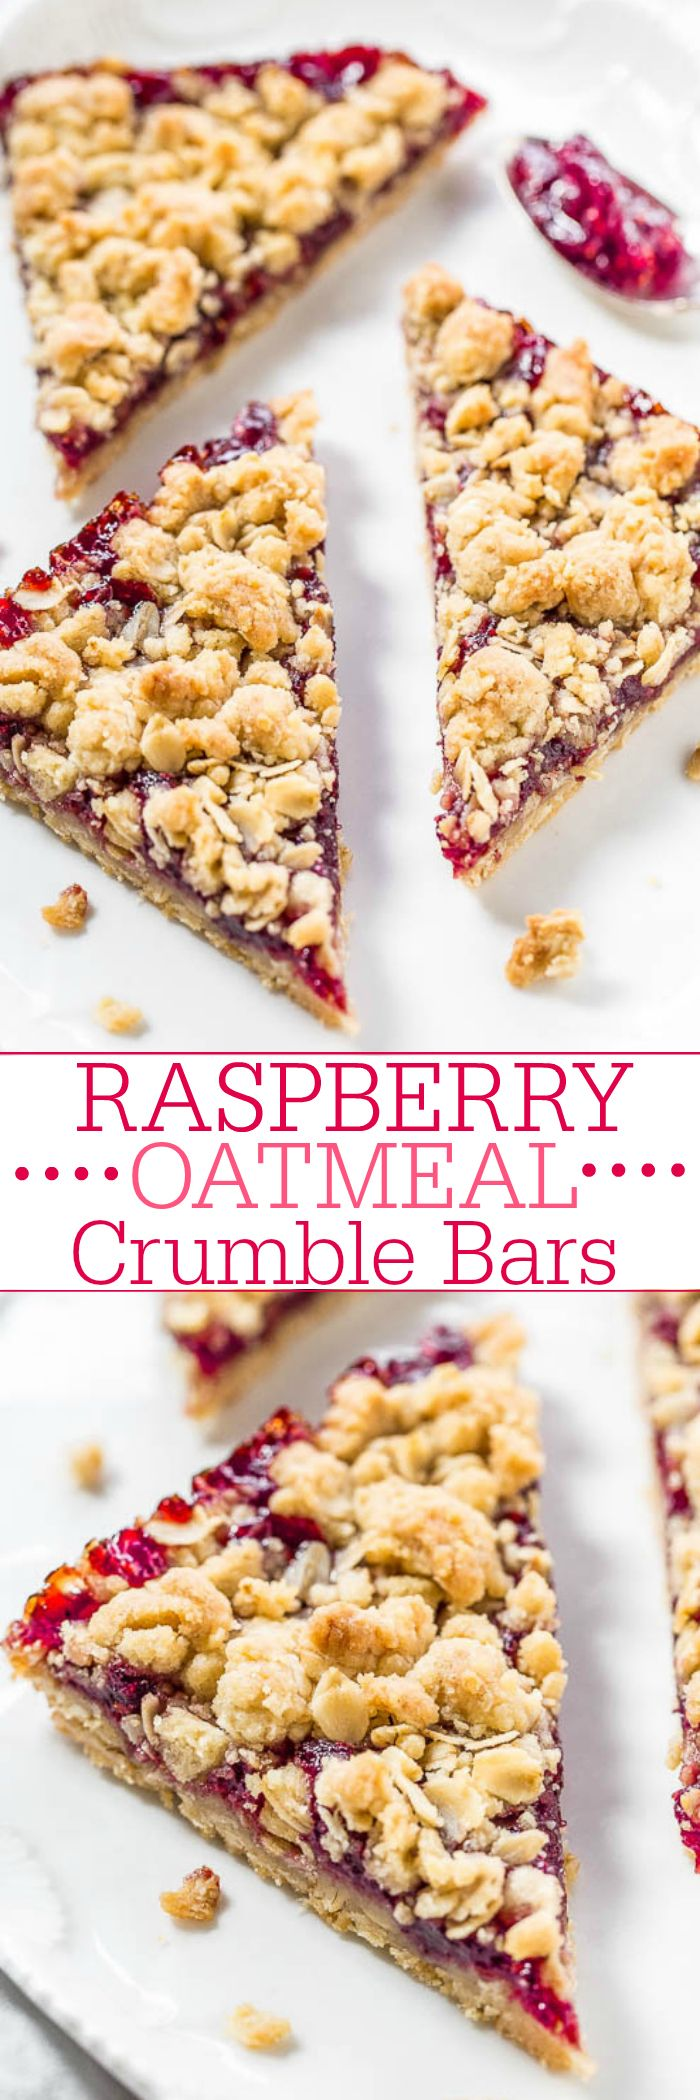 Raspberry Oatmeal Crumble Bars - Fast, easy, no-mixer bars great for breakfast, snacks, or a healthy dessert!! The big crumbles are irresistible! Fresh raspberries not needed so you can make the bars year round!! Update: tried with blueberry 3/2016 and it was delicious